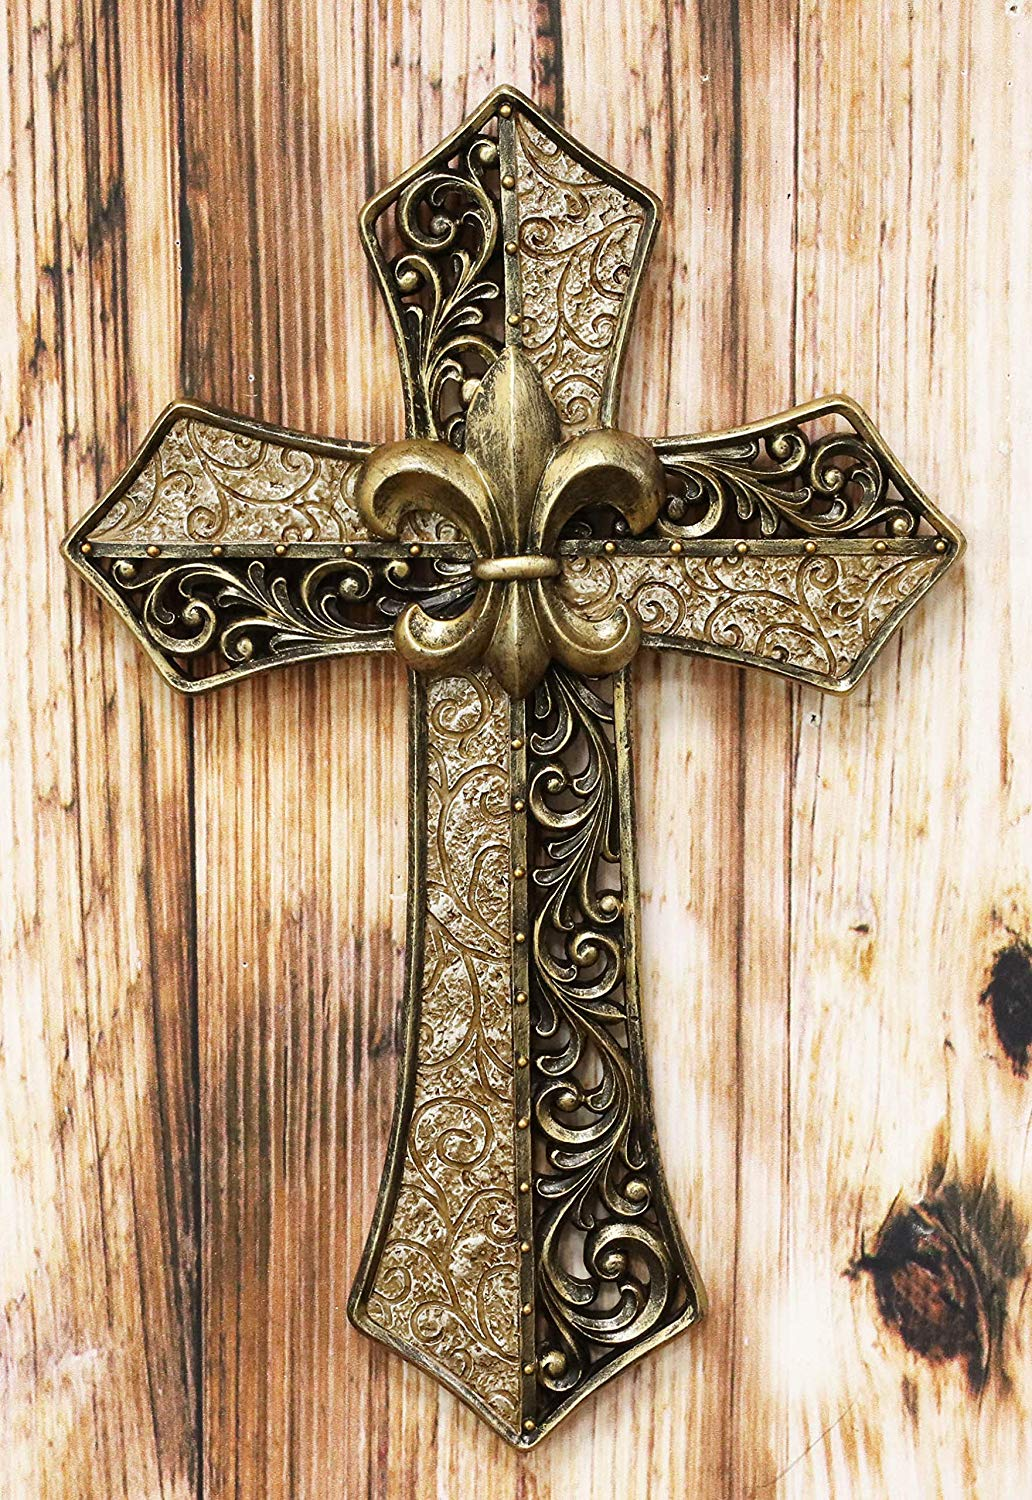 Ebros Rustic Southwest Fleur De Lis With Tuscan Scroll Filigree Art Wall Cross Decor Plaque In Two Tone Vintage Bronze And Beige Color 14 25 Tall French Christian Accent Cross Walmart Com Walmart Com